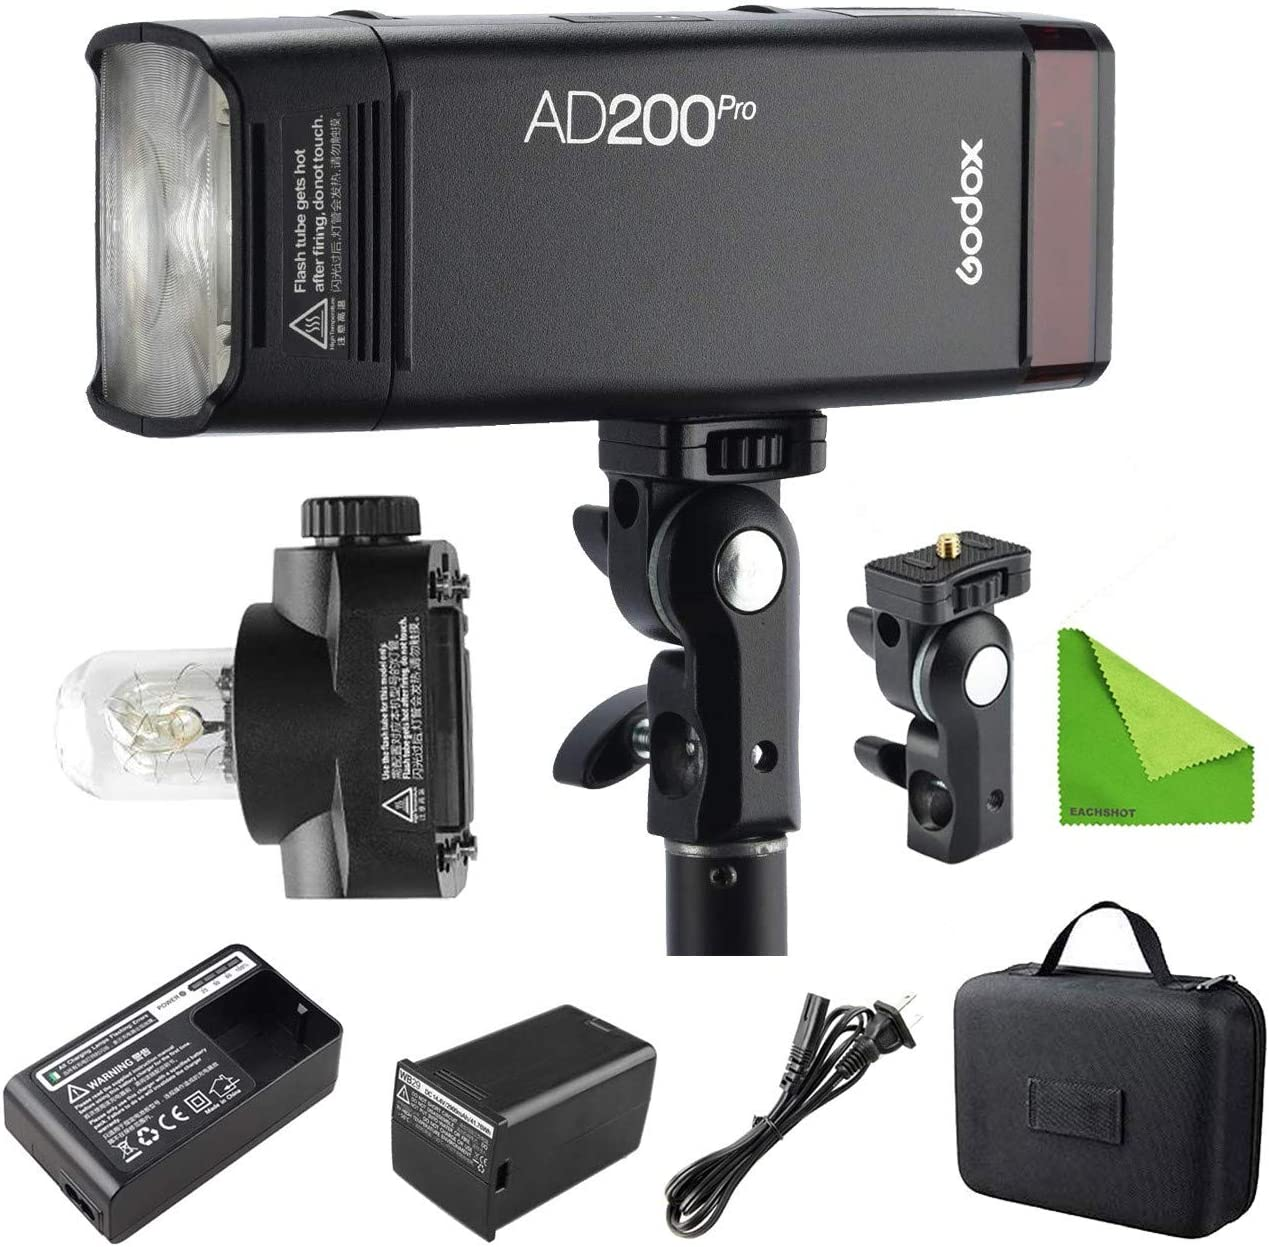 Godox AD200 200Ws 2.4G TTL Speedlite Flash Strobe 1//8000 HSS Monolight with 2900mAh Lithium Battery and Bare Bulb Flash Head to Provide 500 Full Power Flashes Recycle in 0.01-2.1 Second